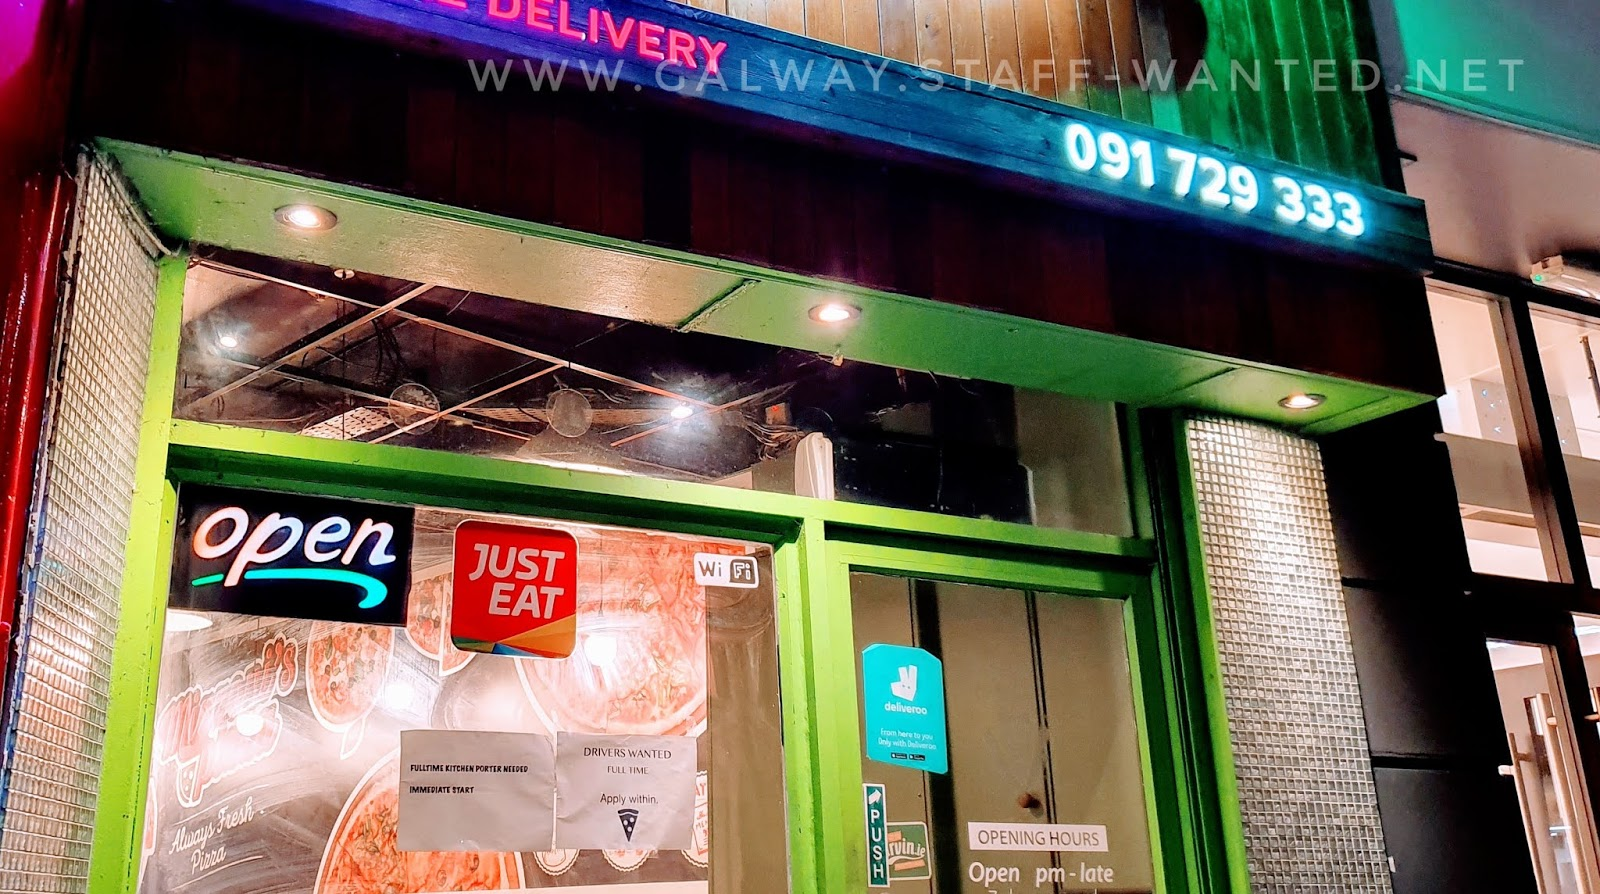 shopfront of mizzoni pizza store galway - open in the evenings only - phone number 091729333